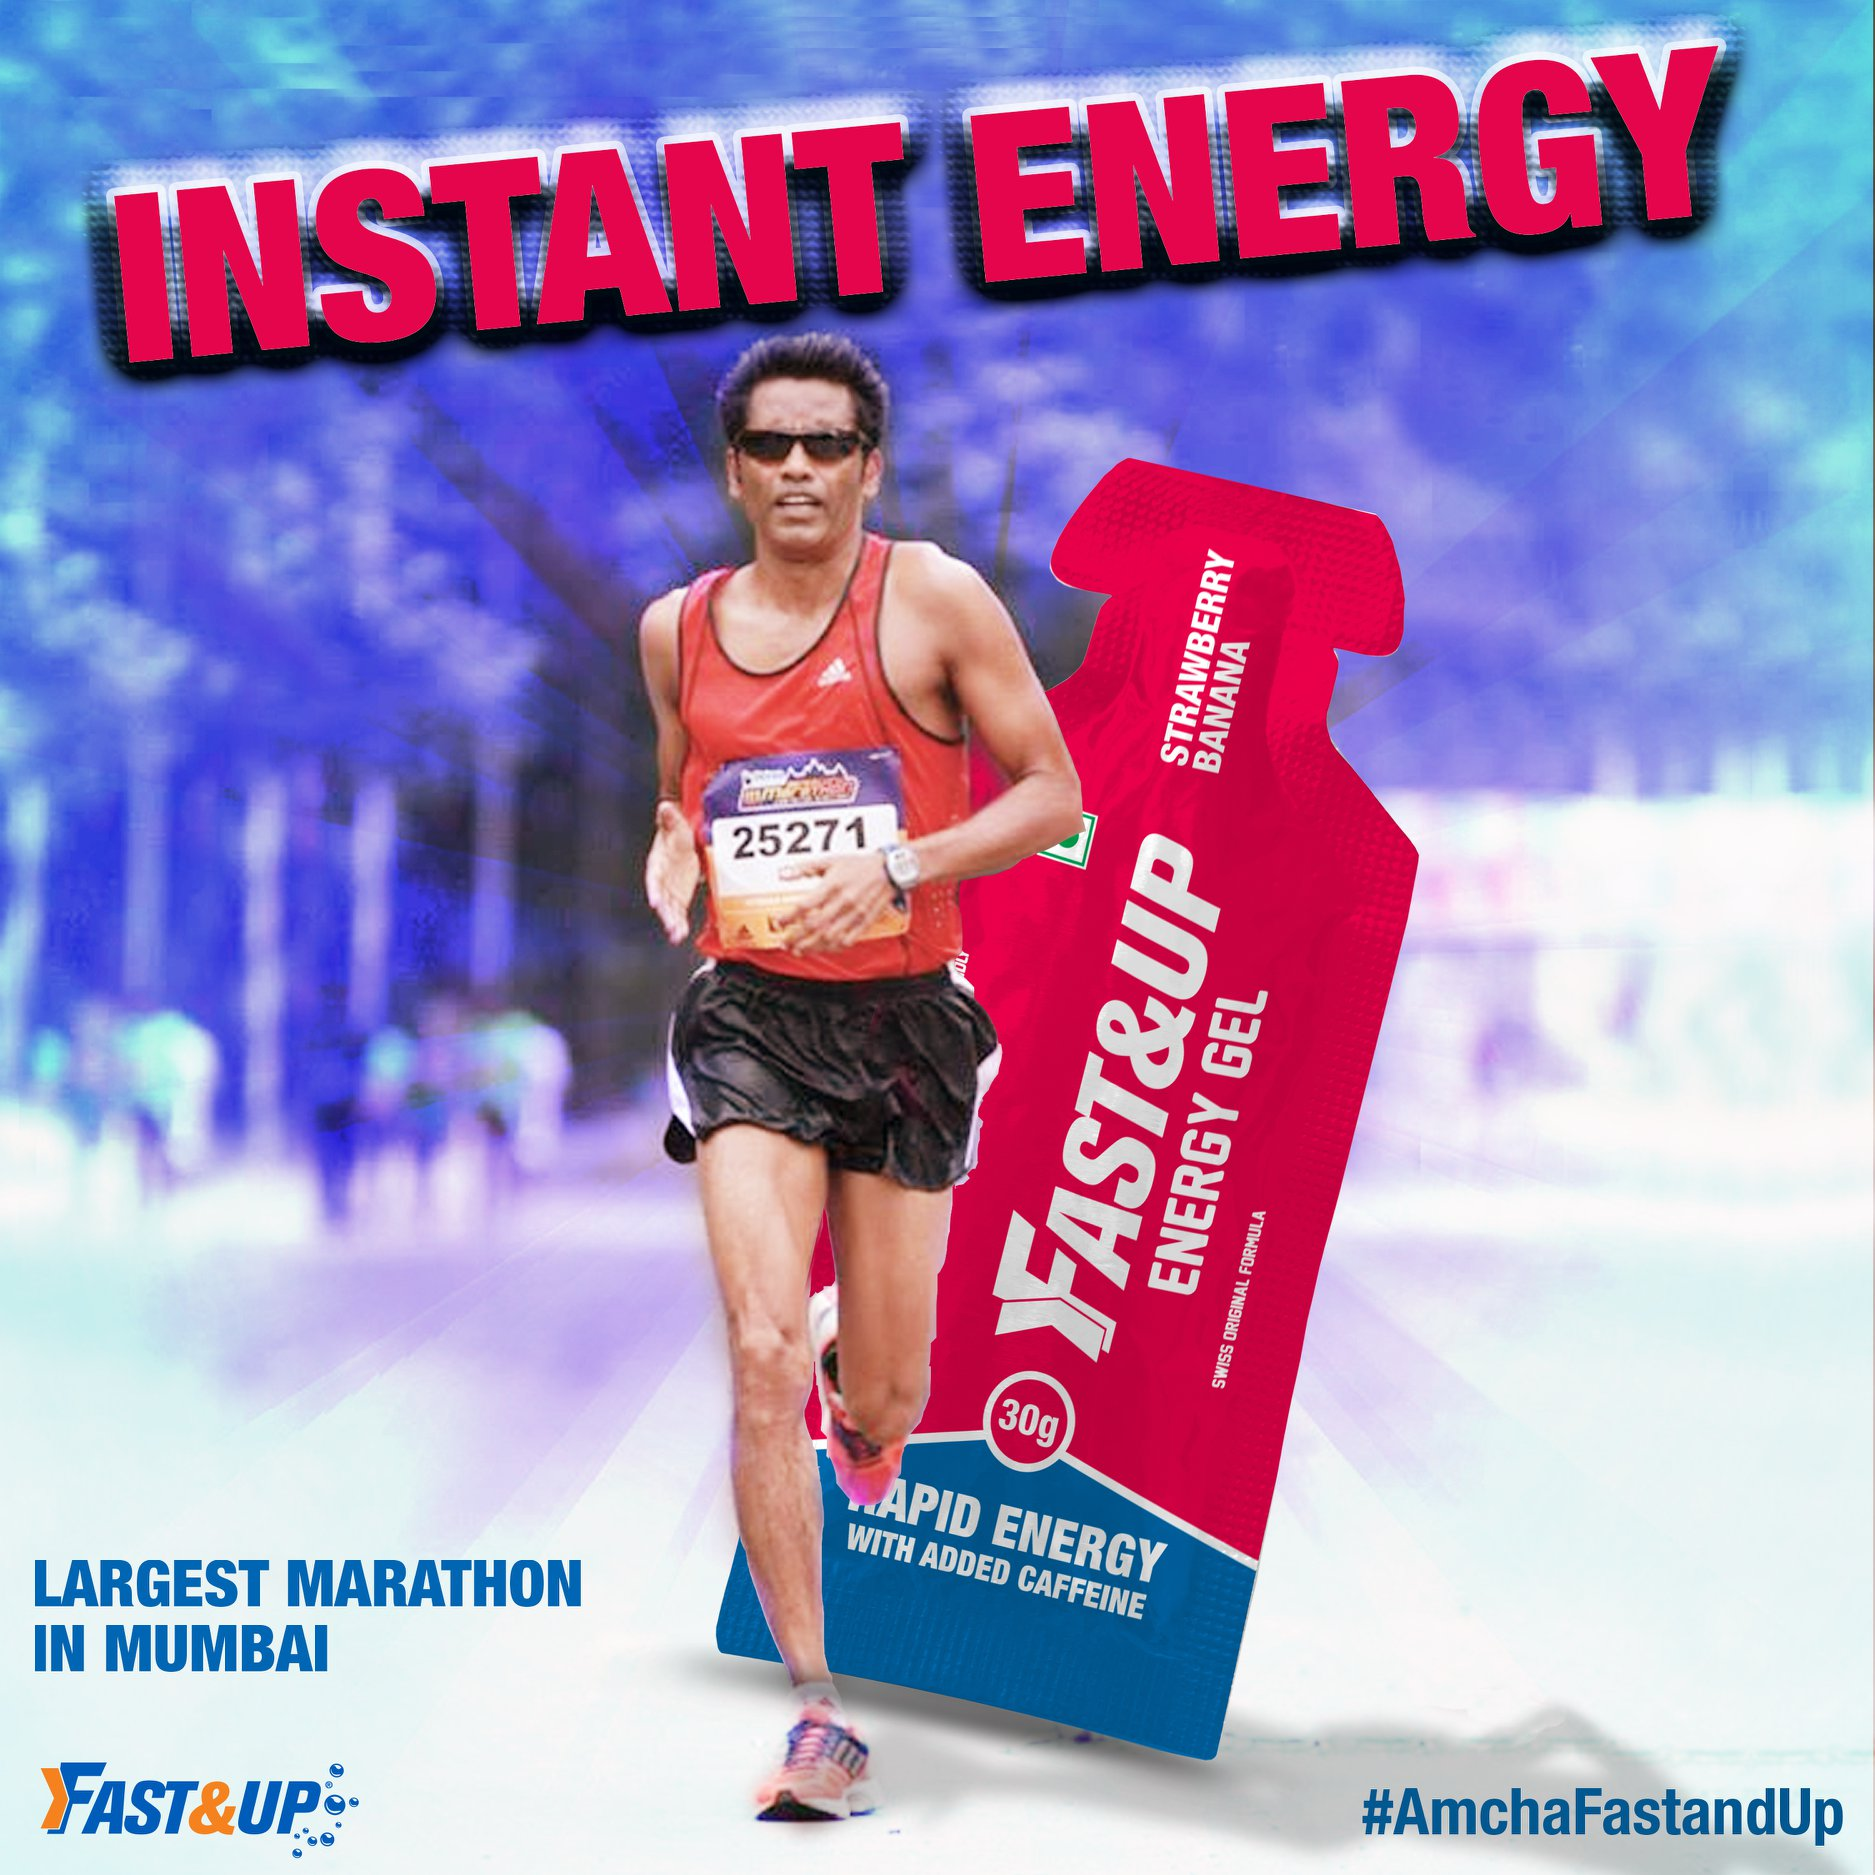 What are energy gels and how are they helpful?